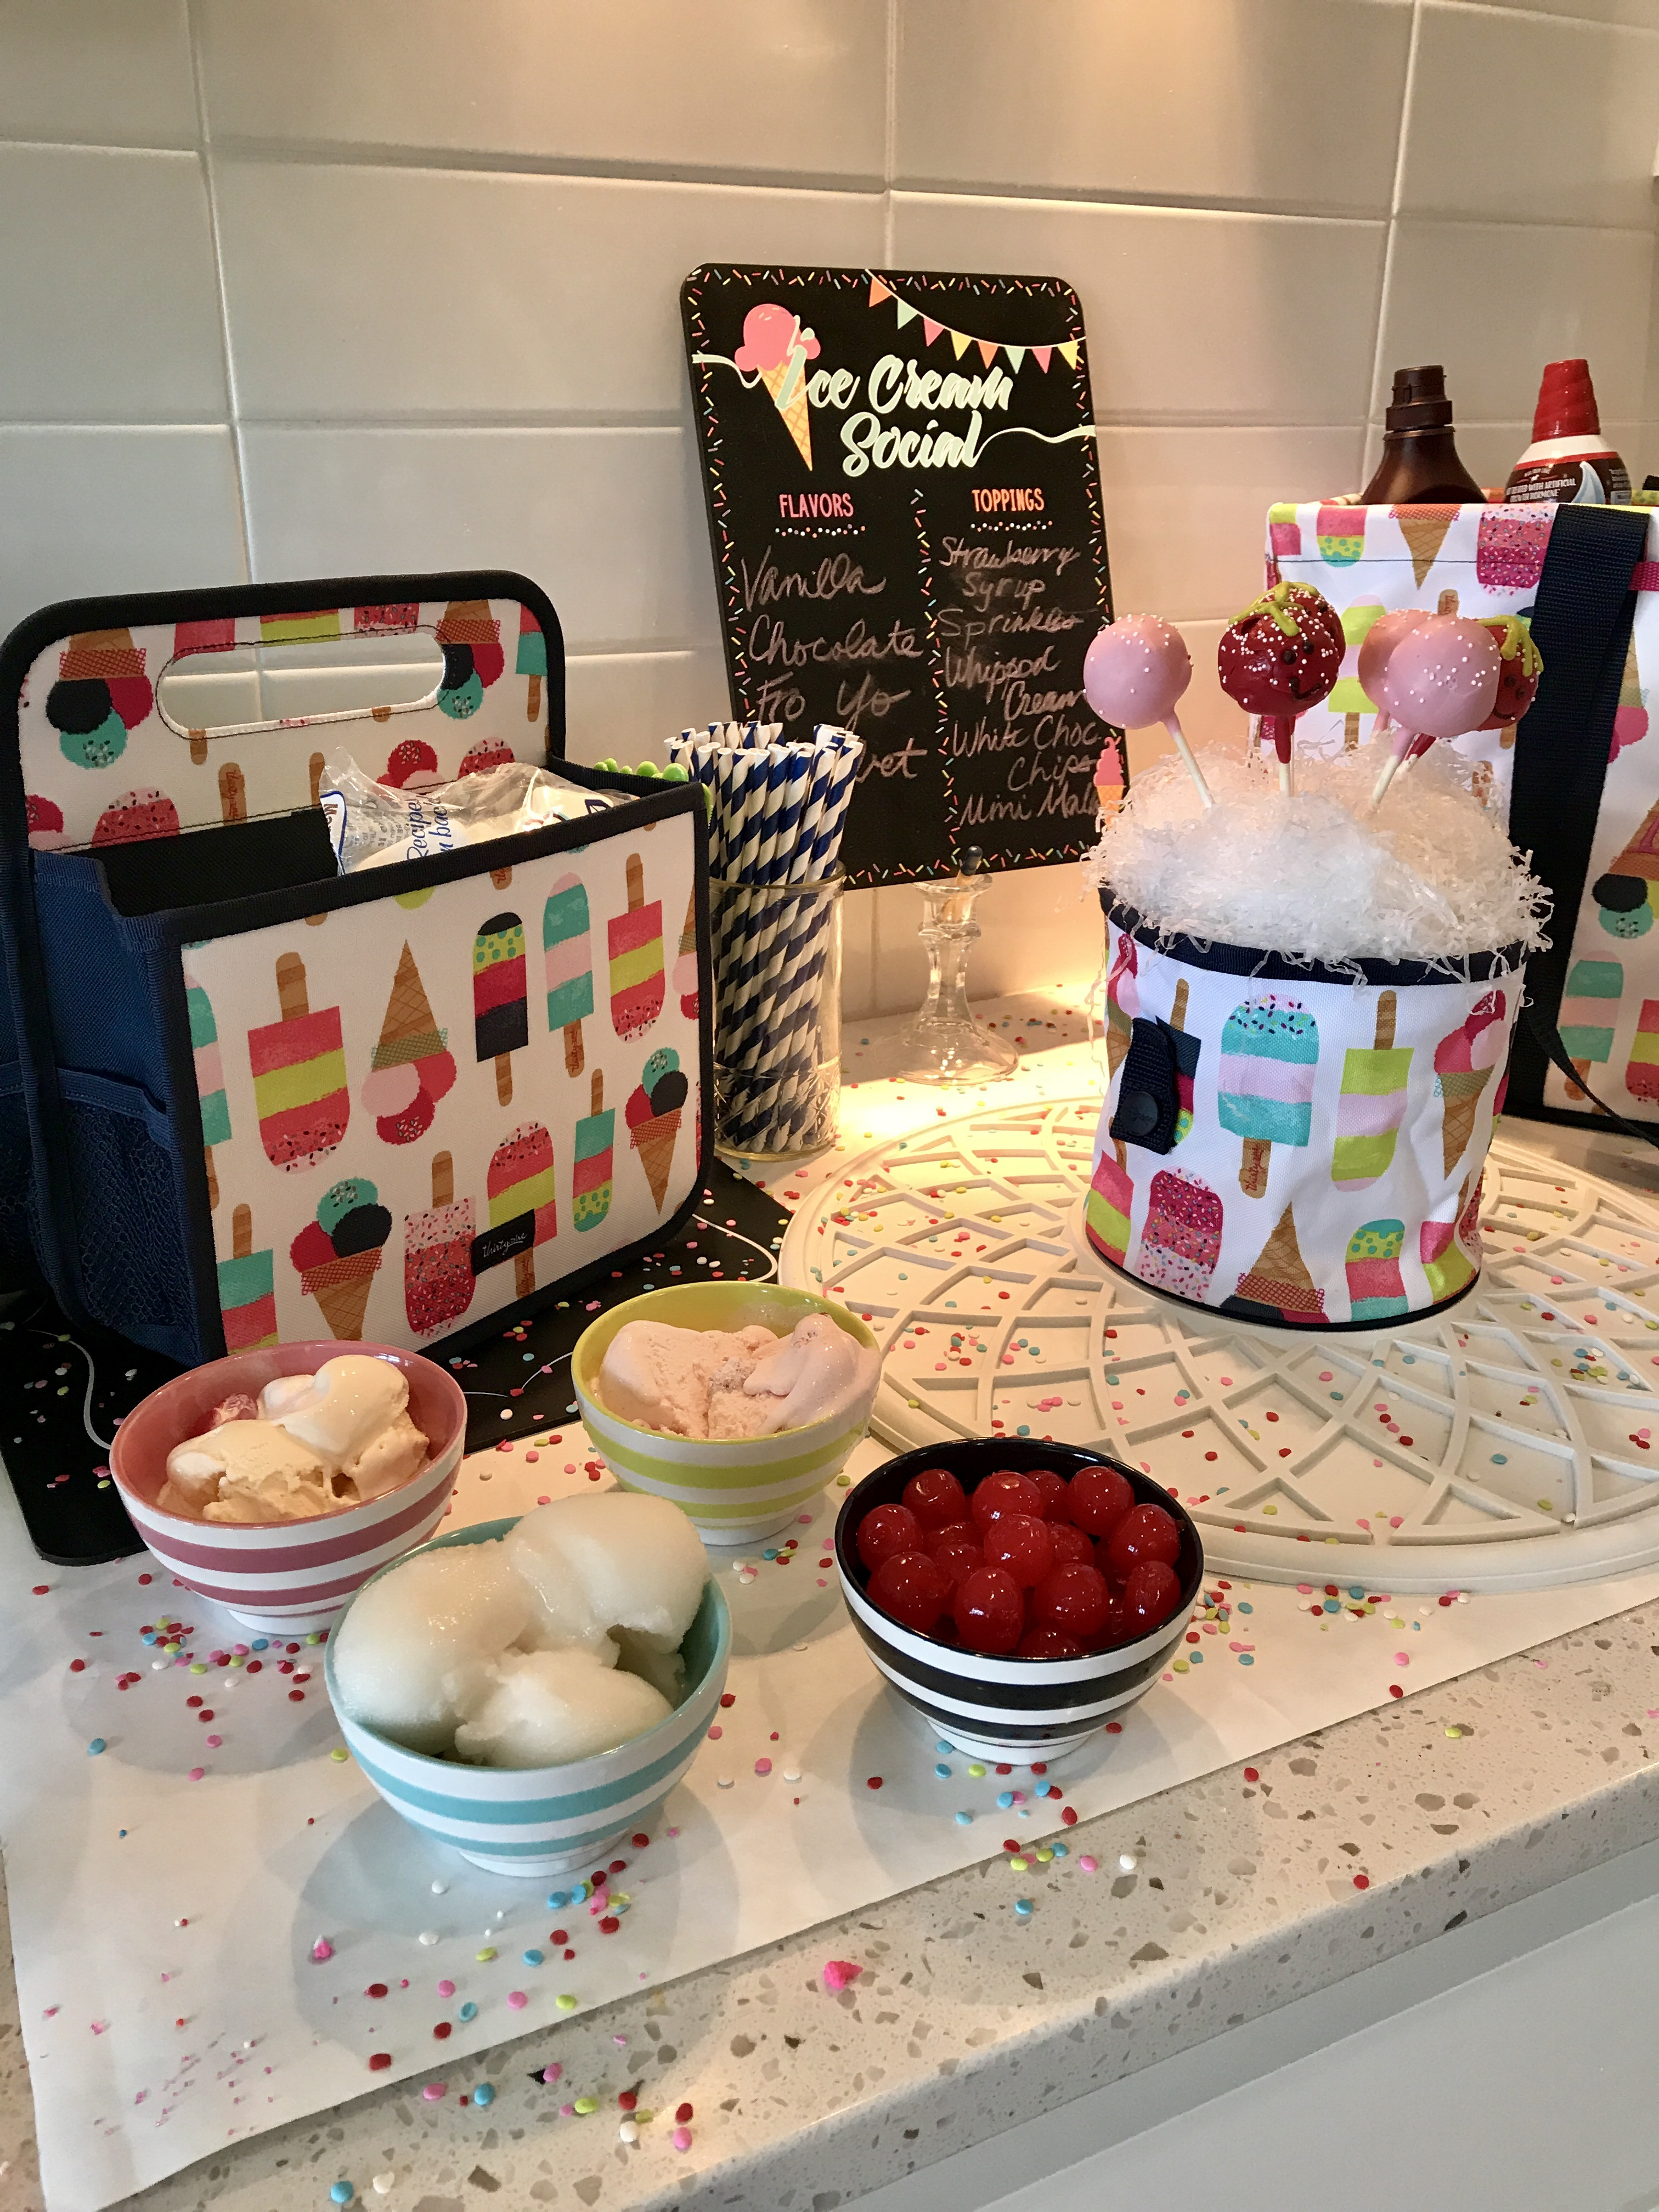 Oh snap bin ideas - Double Duty Caddy And Oh Snap Bin With The Get The Scoop Bowl Set By